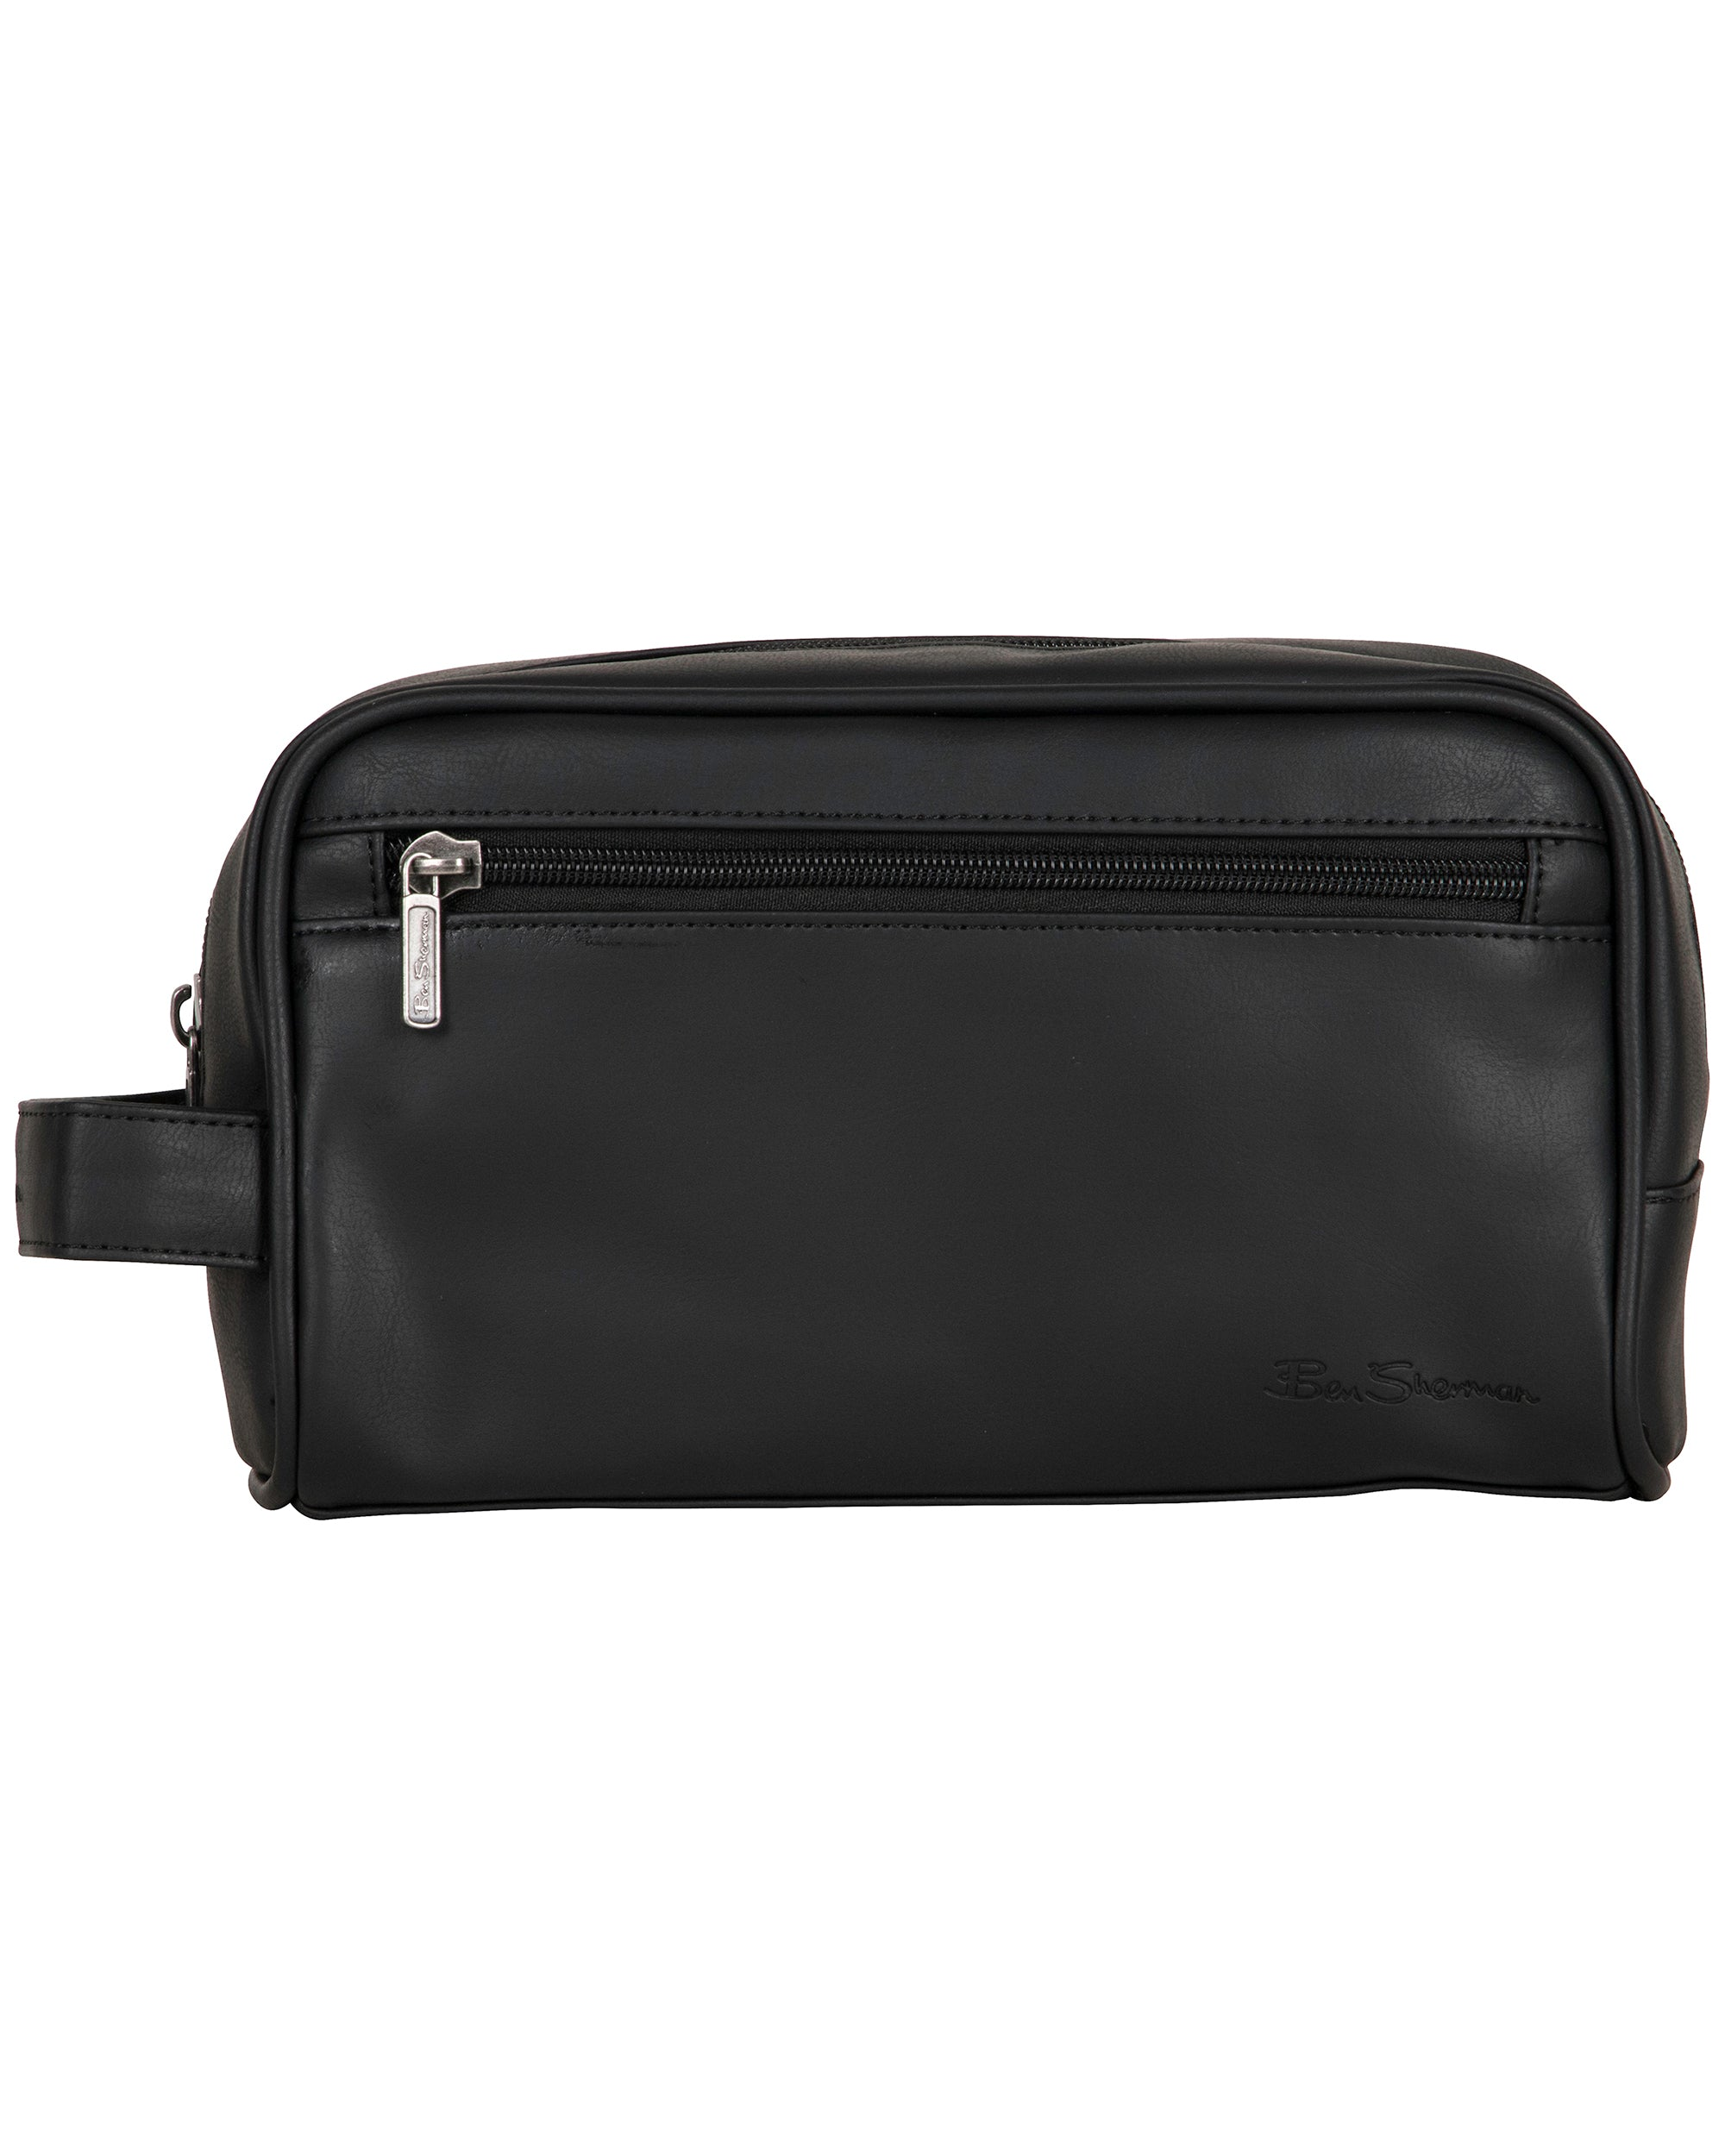 Mayfair Single Compartment Travel Dopp Kit - Black